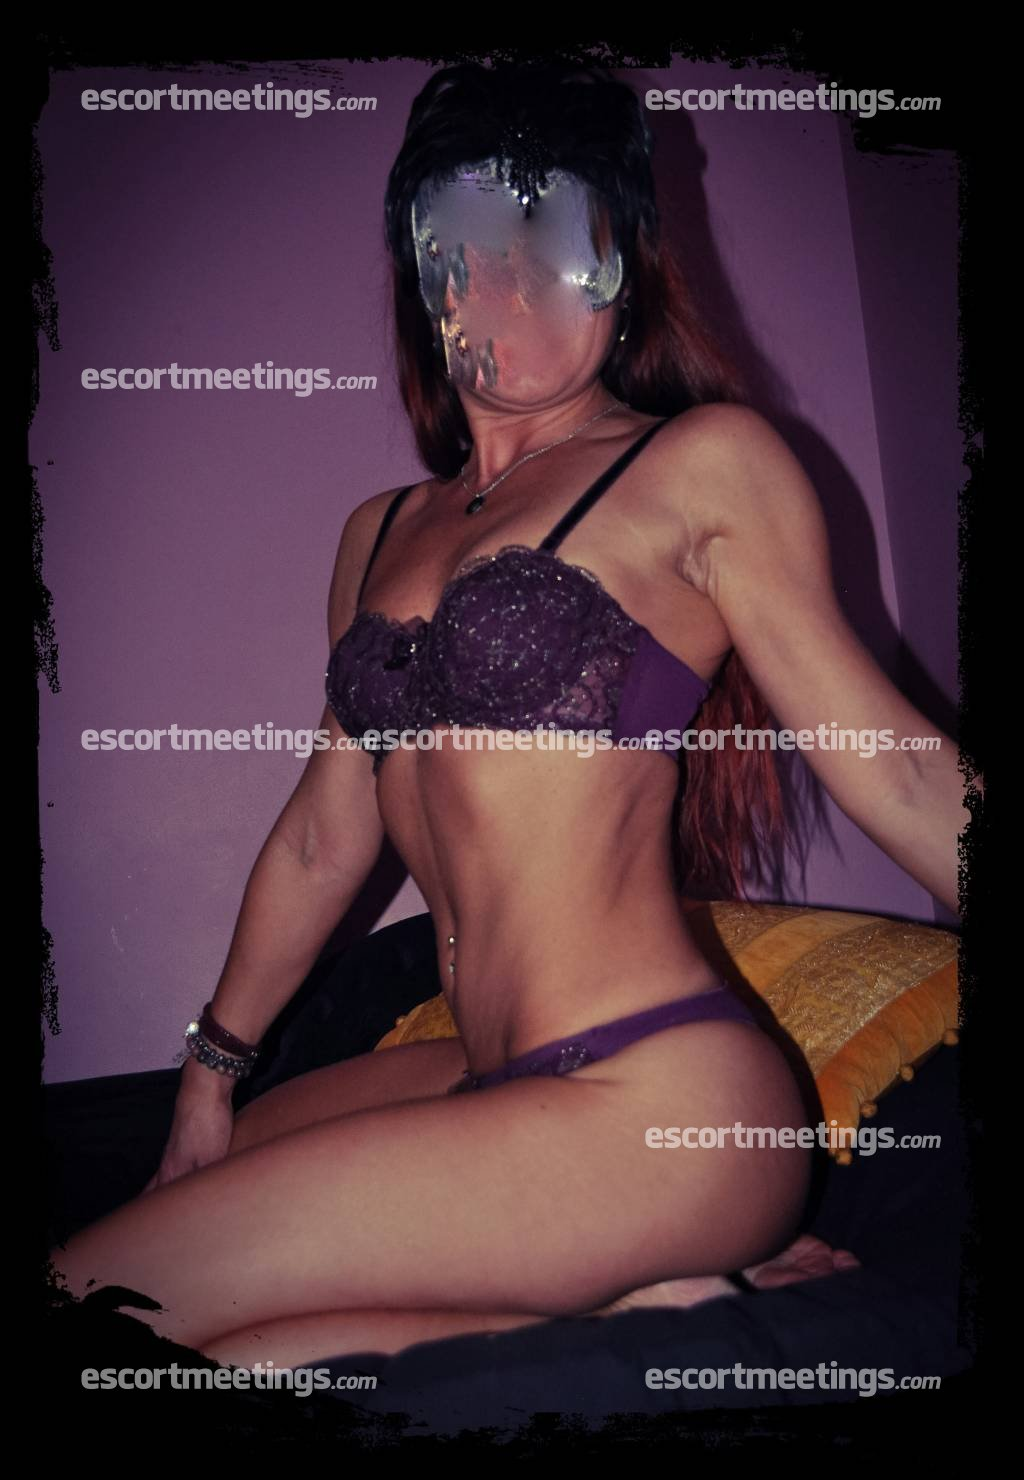 escort girls in malmö eskort girl